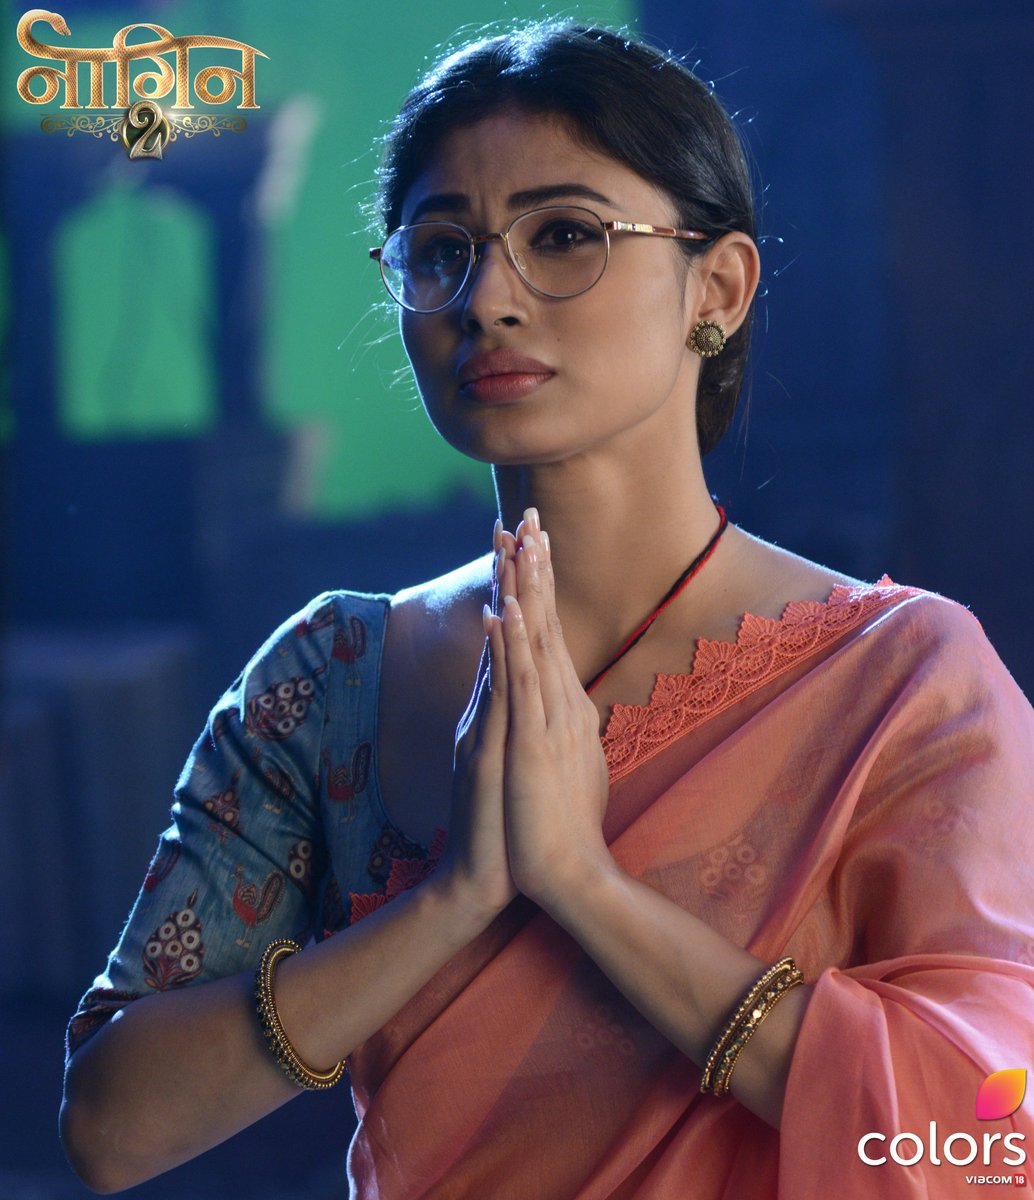 Shivanya Singh | Naagin Wiki | FANDOM powered by Wikia